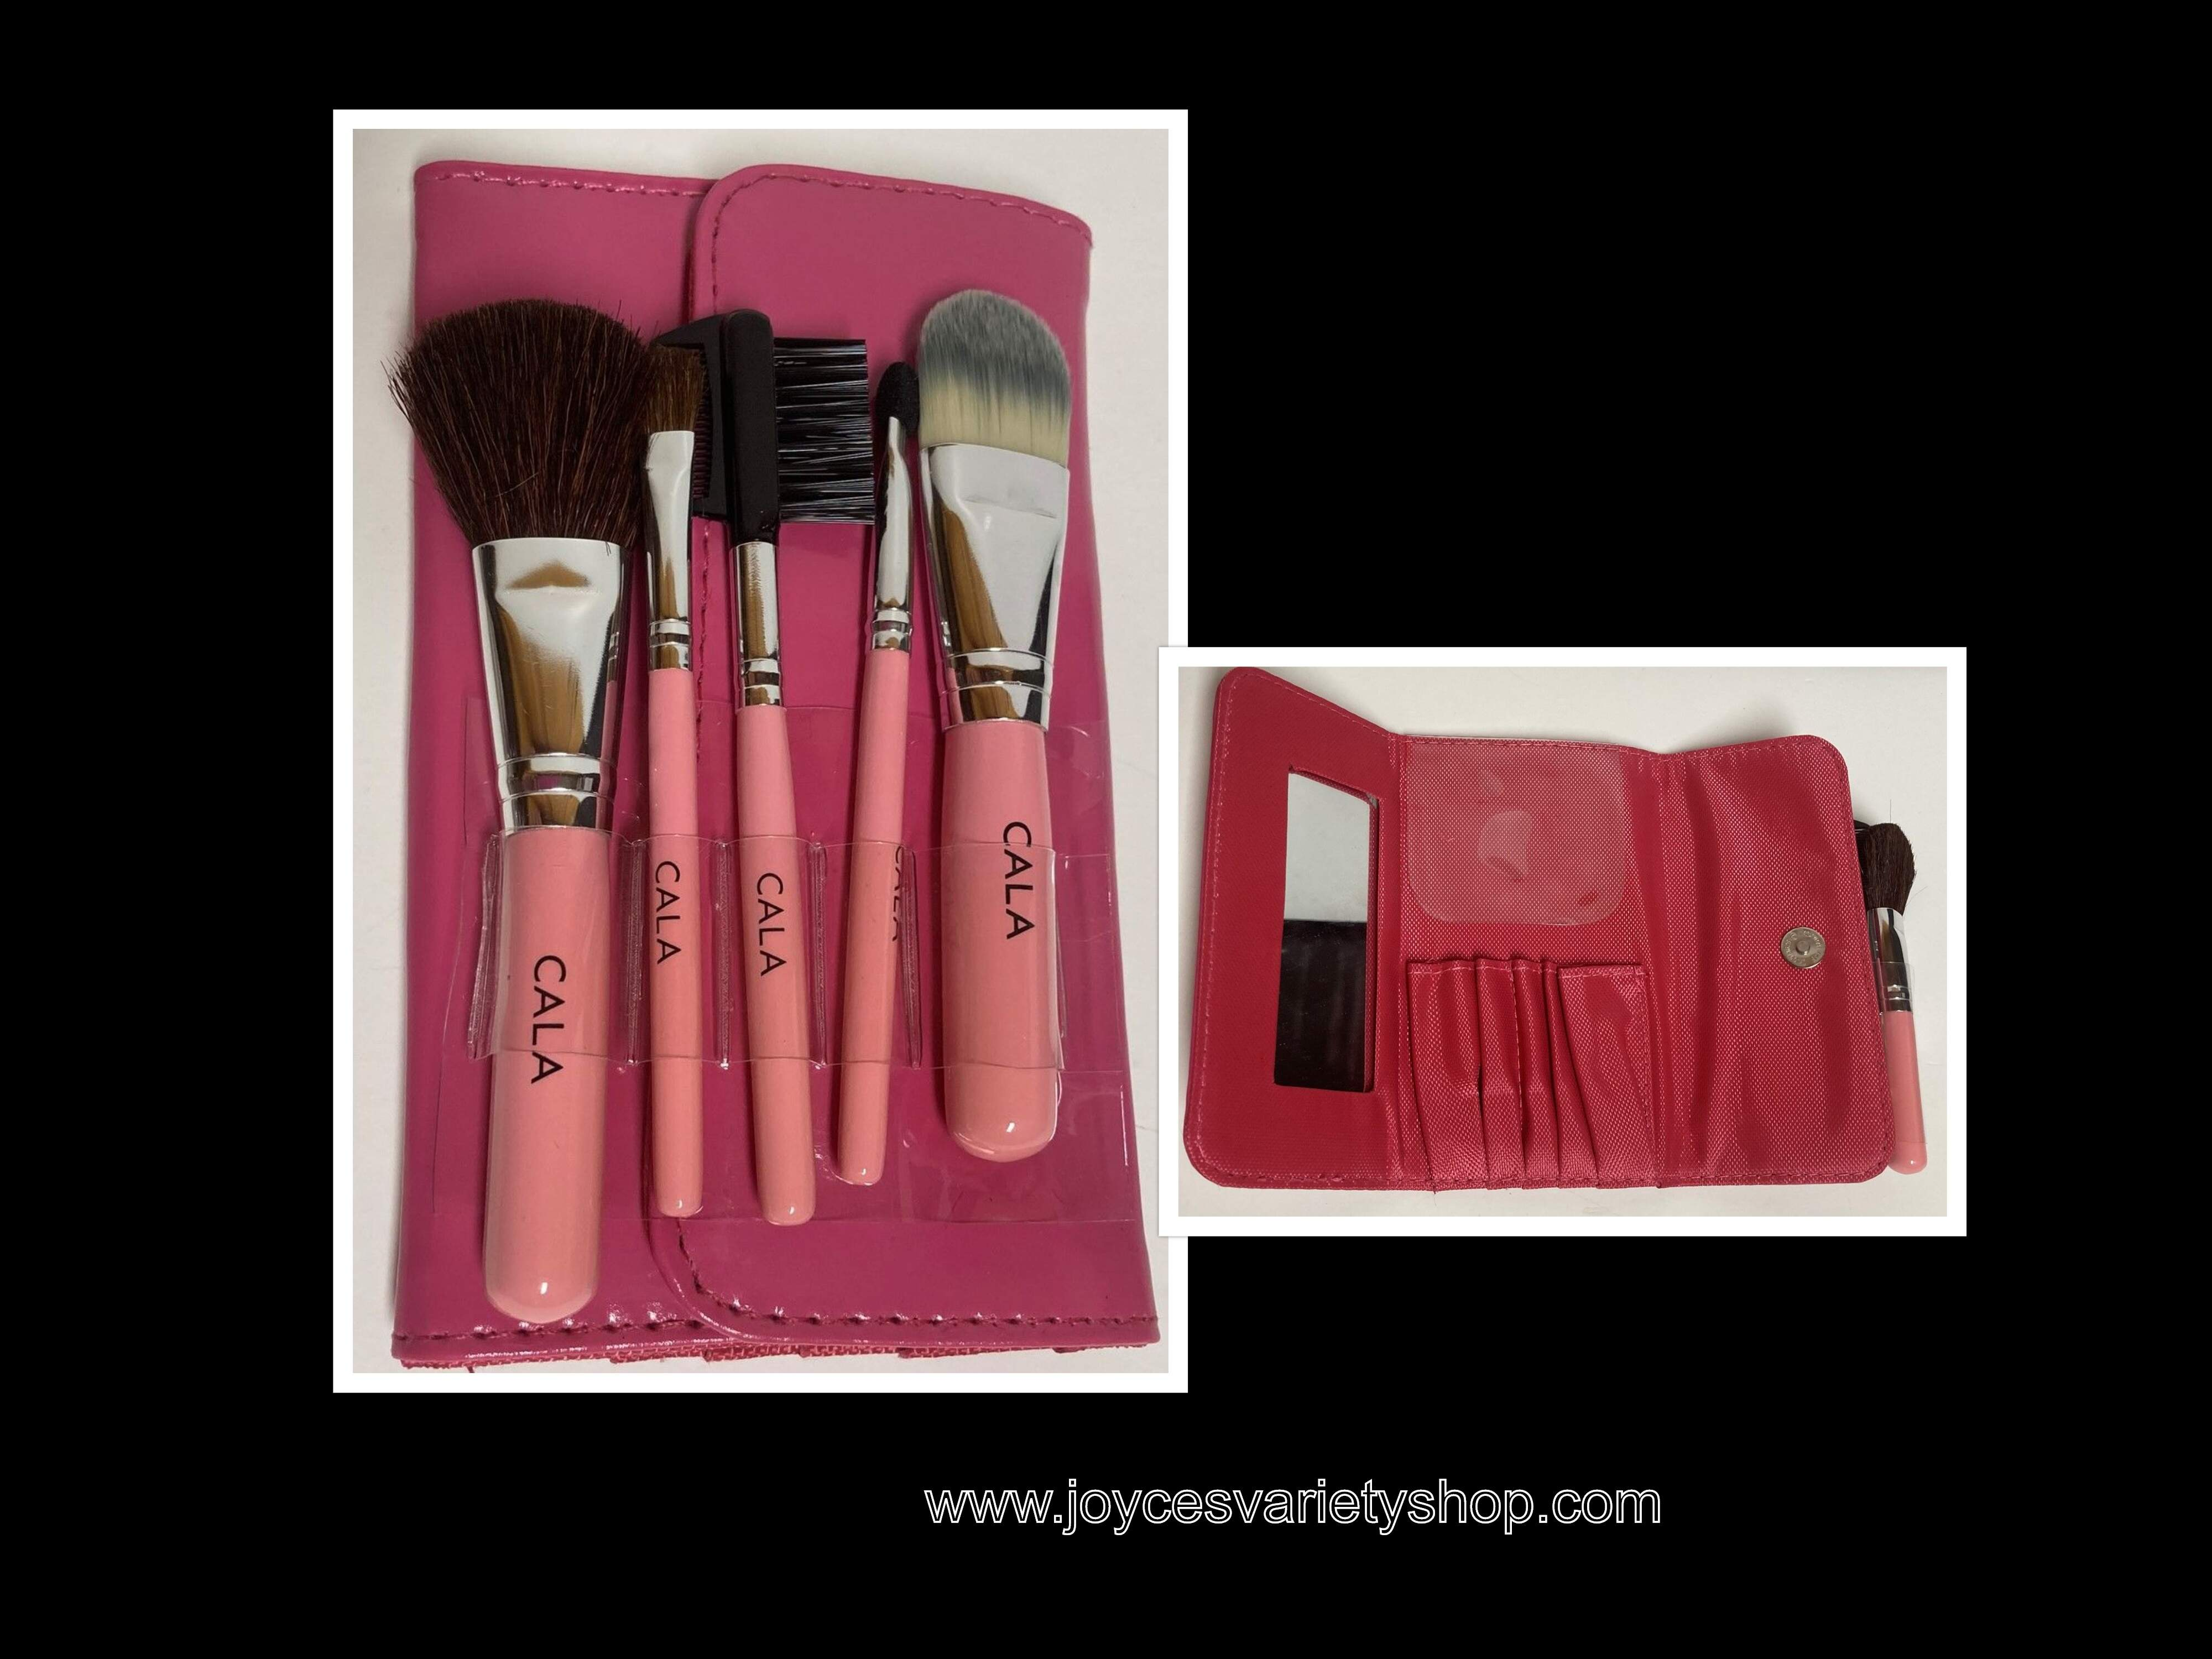 Cala Pink Coral Make Up Brush Set 5 PC Pouch Travel Set